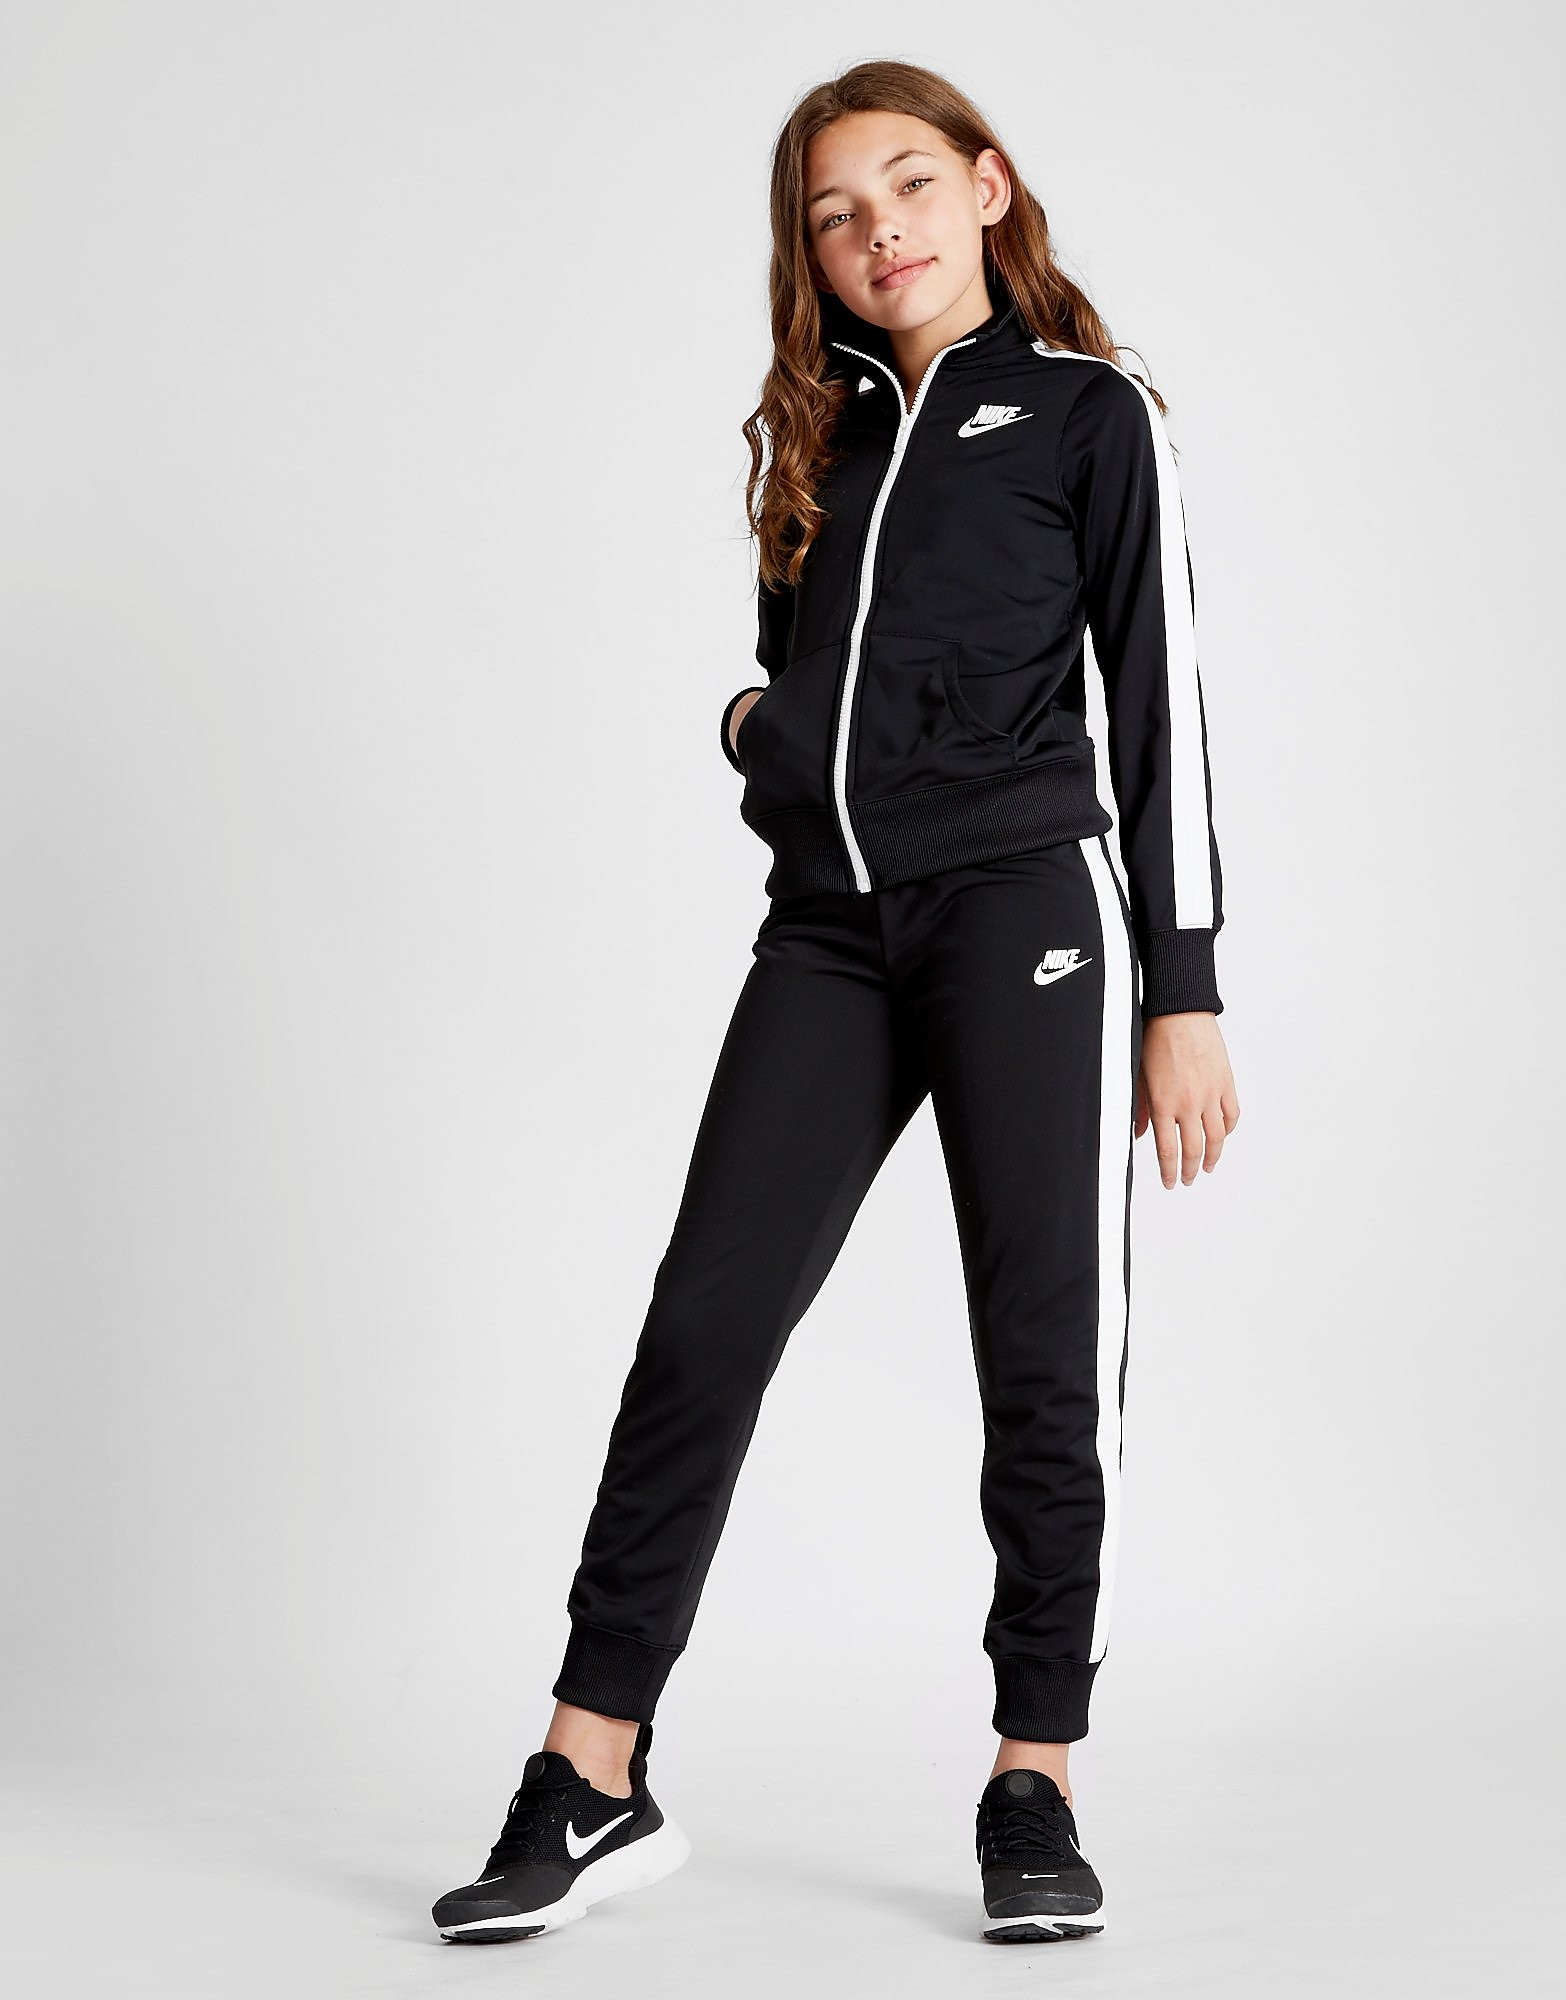 Nike Girls' Poly Track Suit Junior